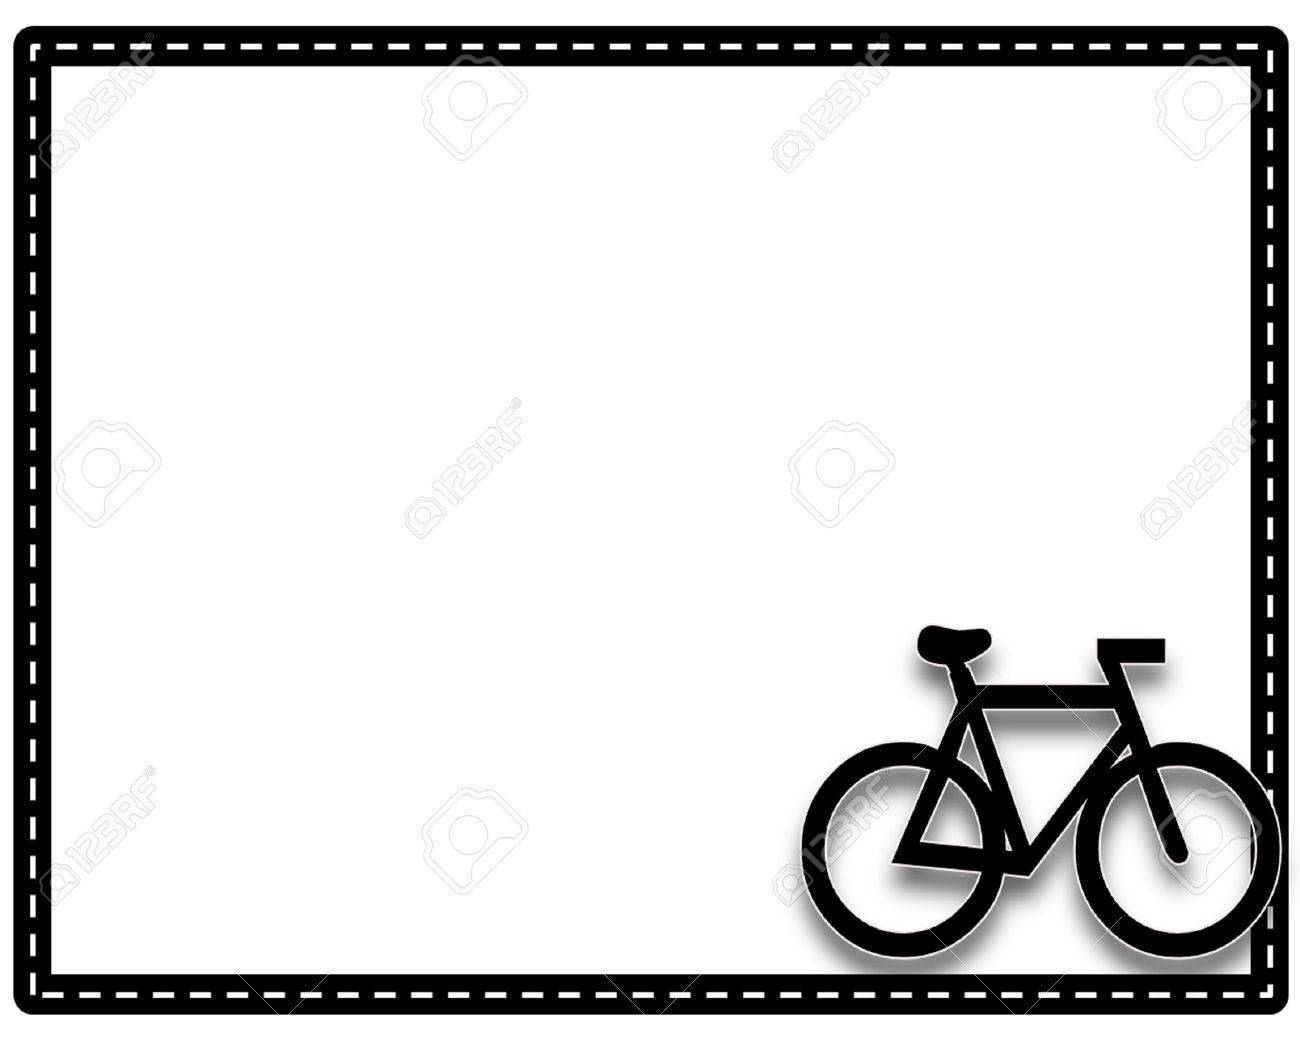 Picture frame bike or cycling with a white background and border colors style 1 Stock Photo - 28189069